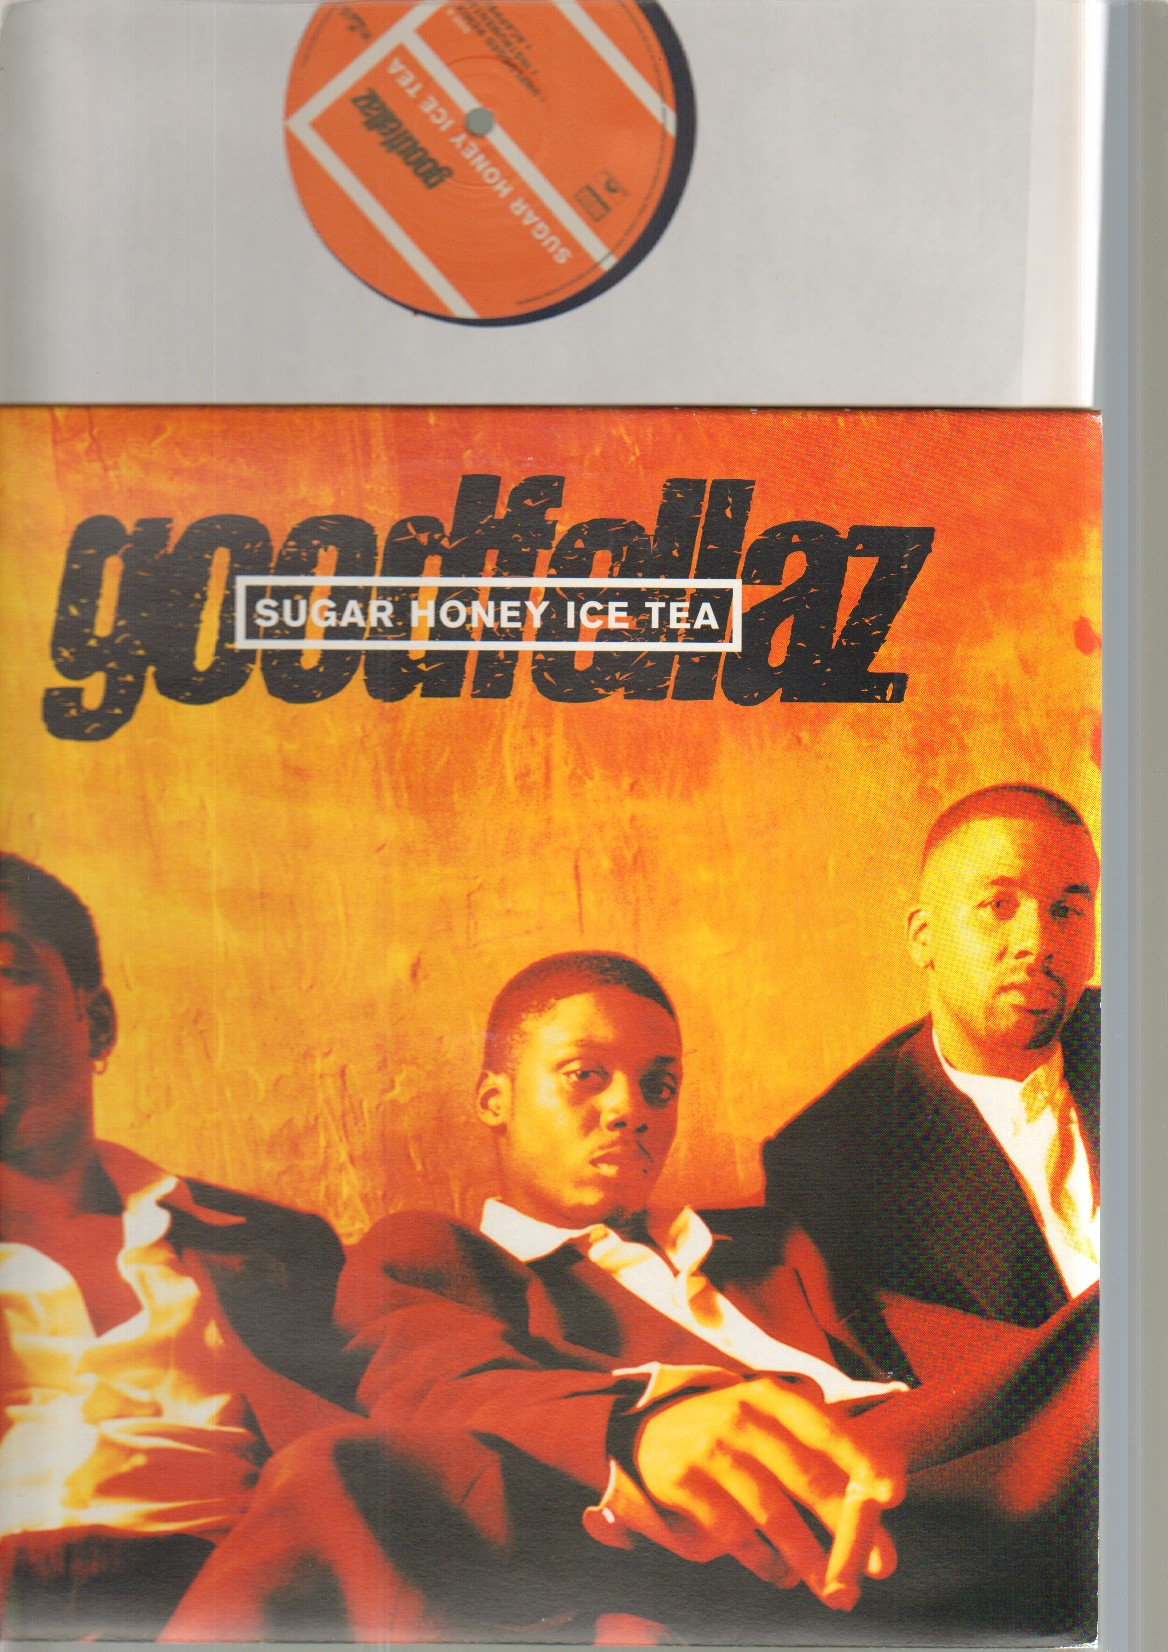 GOODFELLAZ - SUGAR HONEY ICE TEA - Maxi 45T